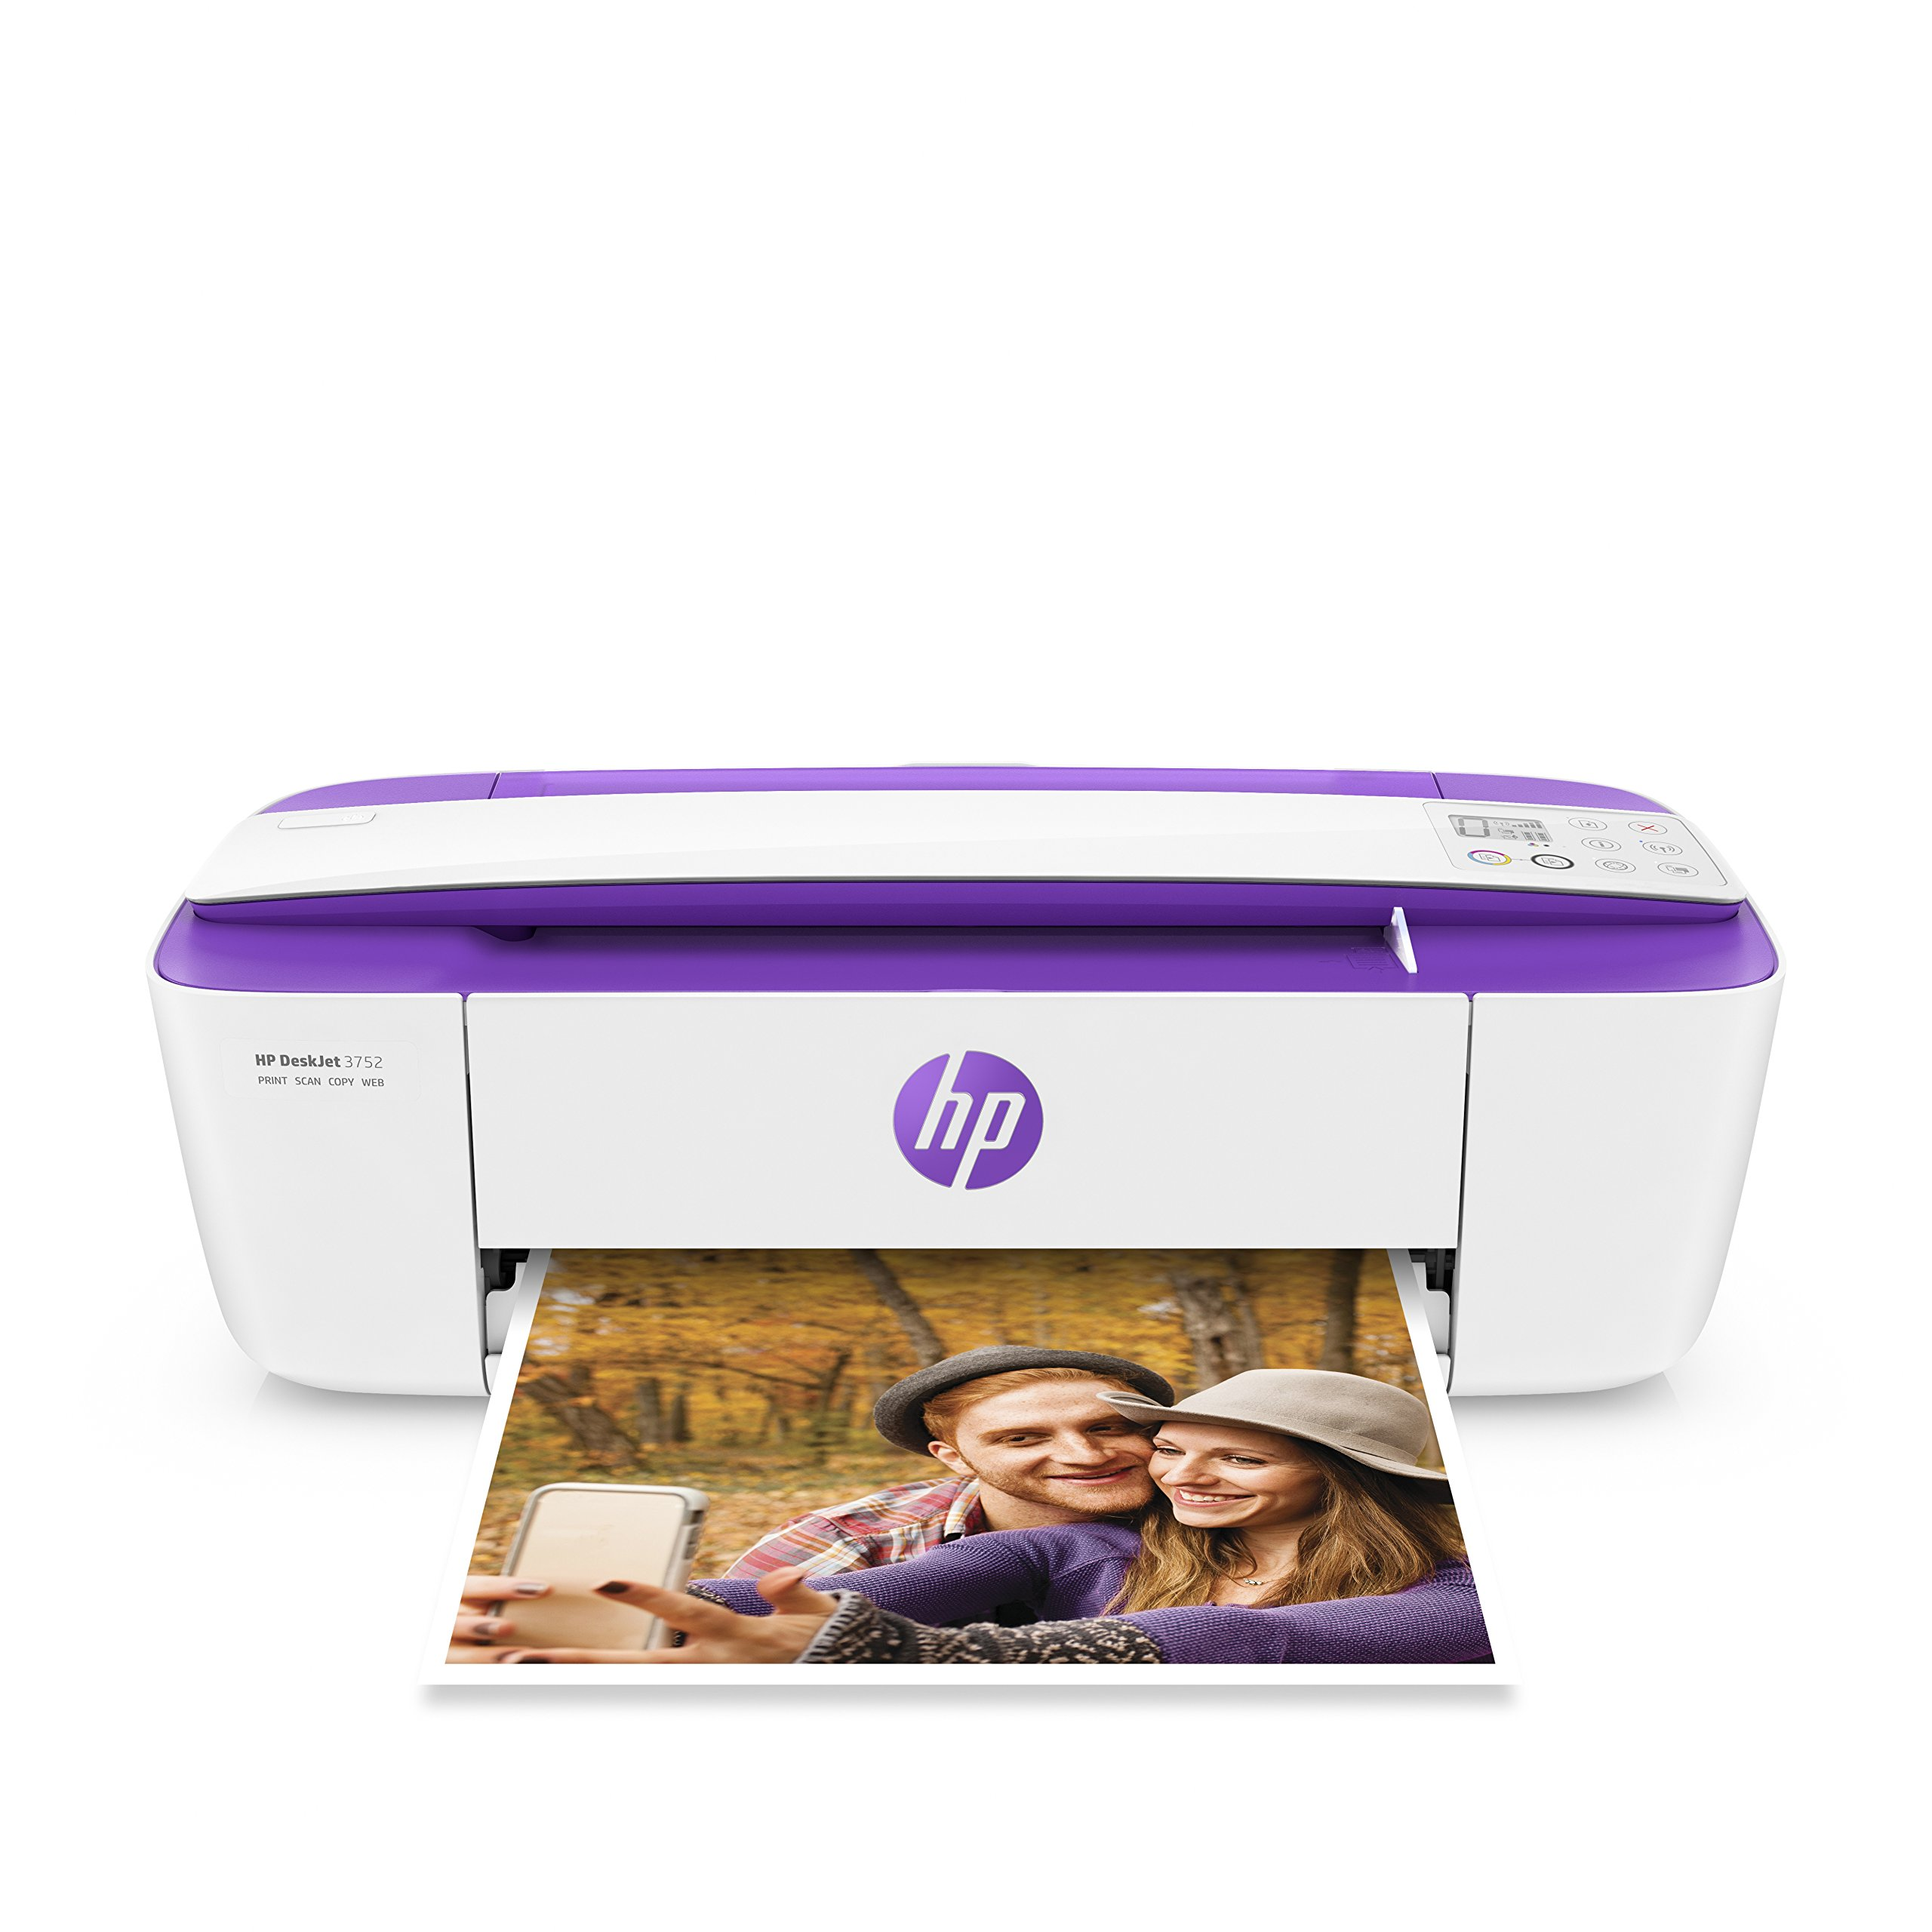 HP DeskJet 3752 Wireless All-in-One Compact Printer with Mobile Printing, Instant Ink ready - Purple Accent (T8W52A)